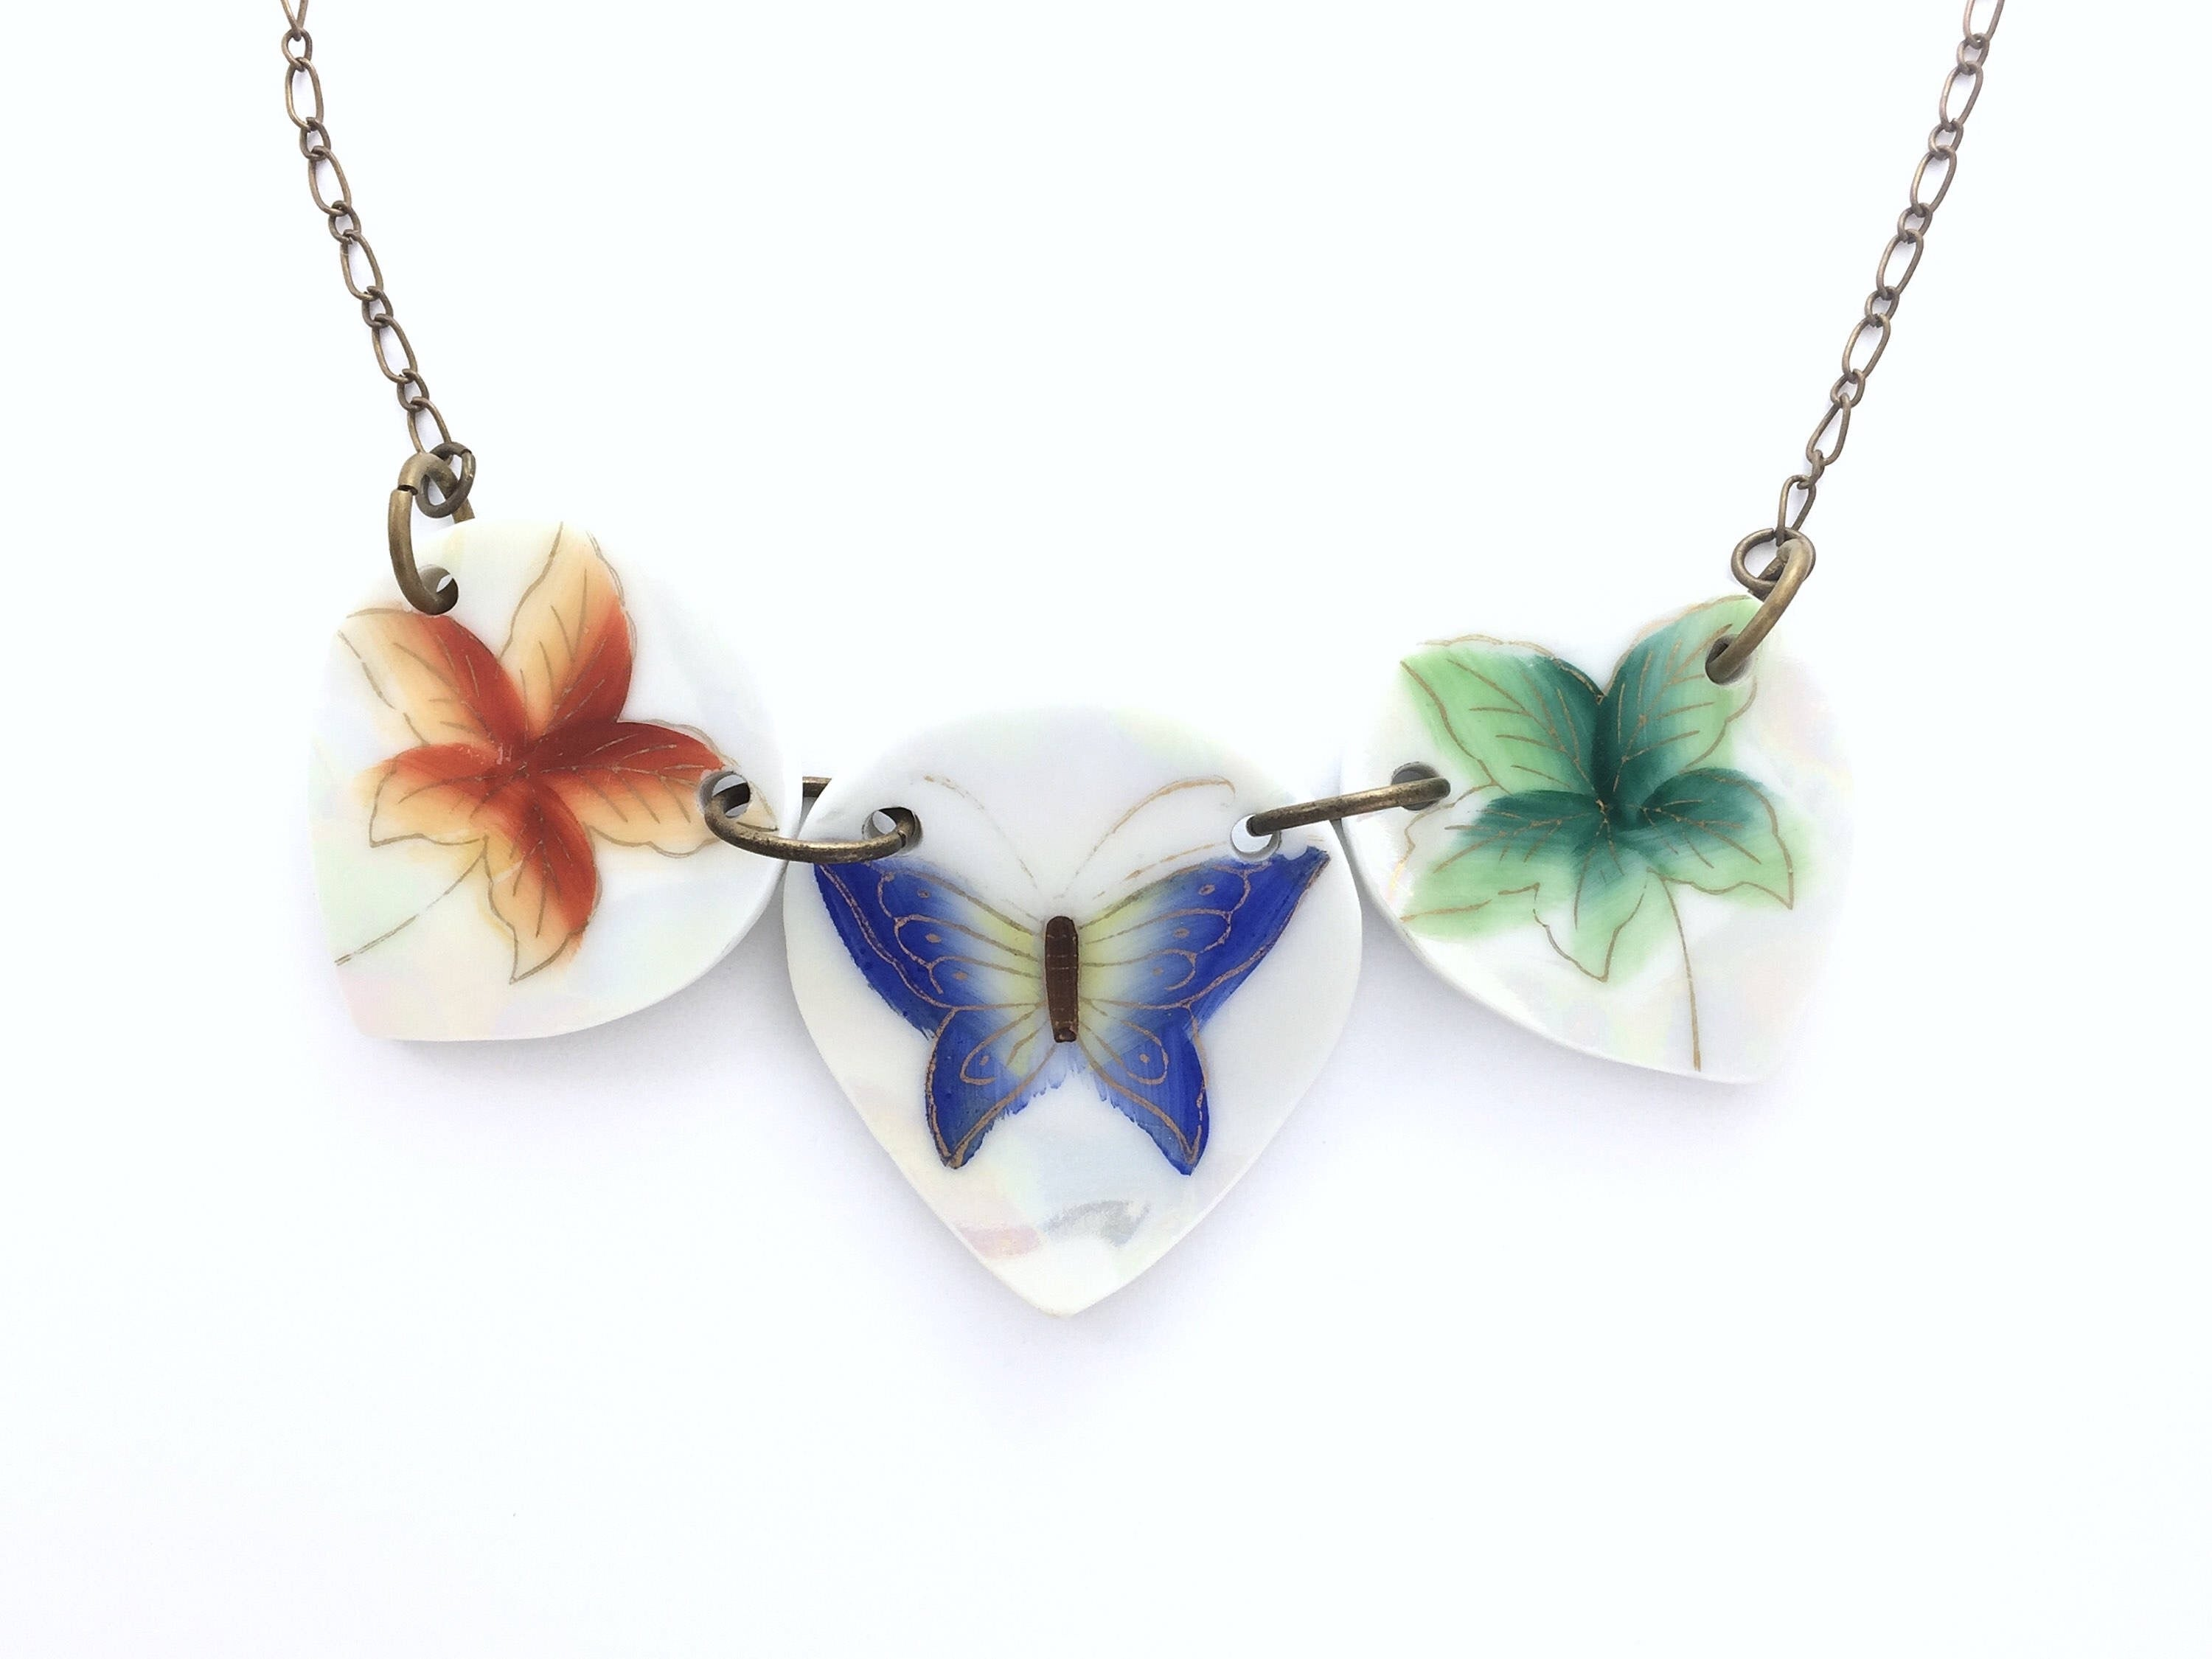 Statement necklace Broken China Jewelry - Butterfly plate Statement necklace